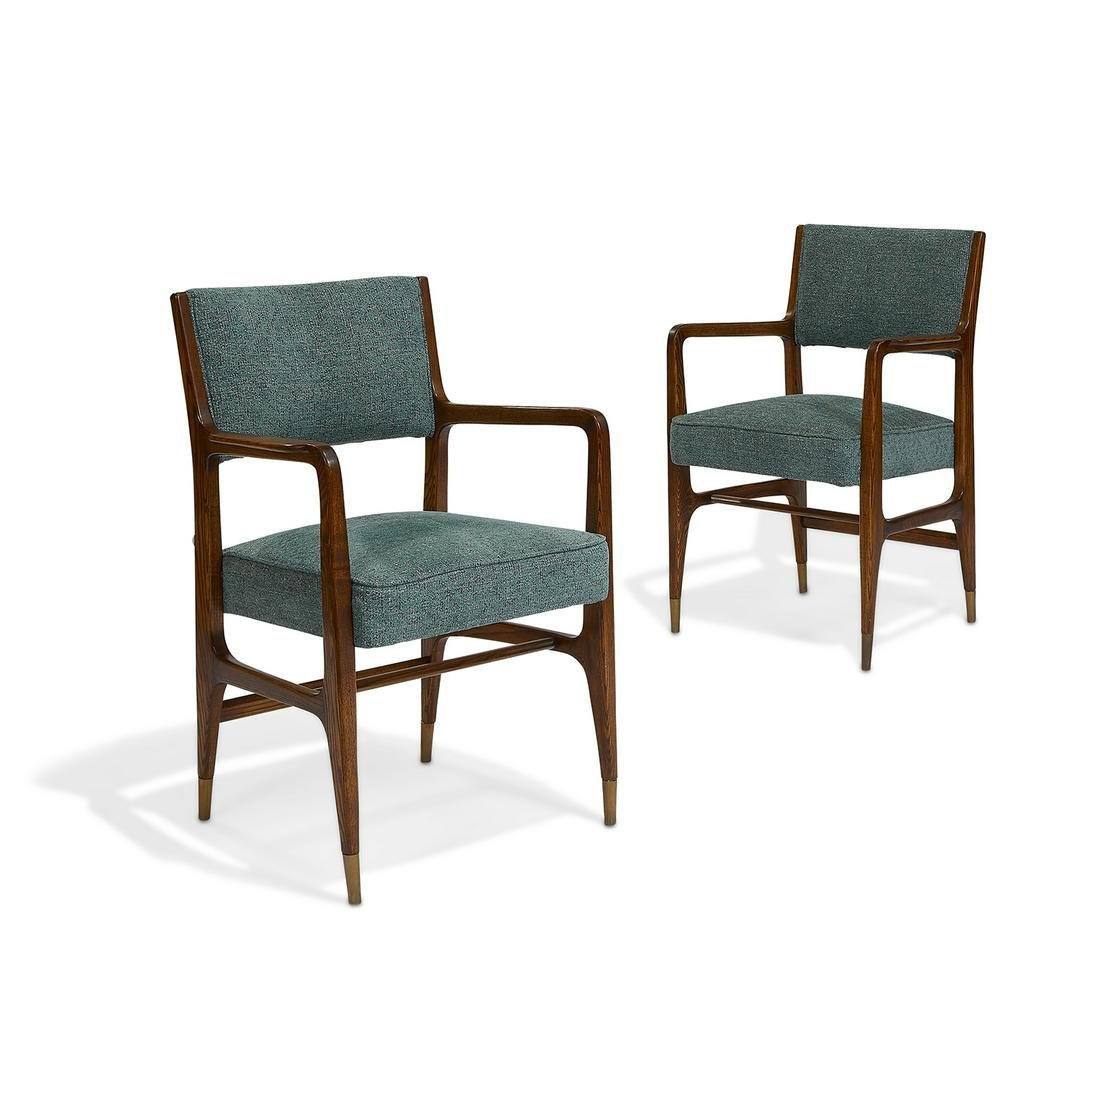 Gio Ponti for Cassina armchairs, pair